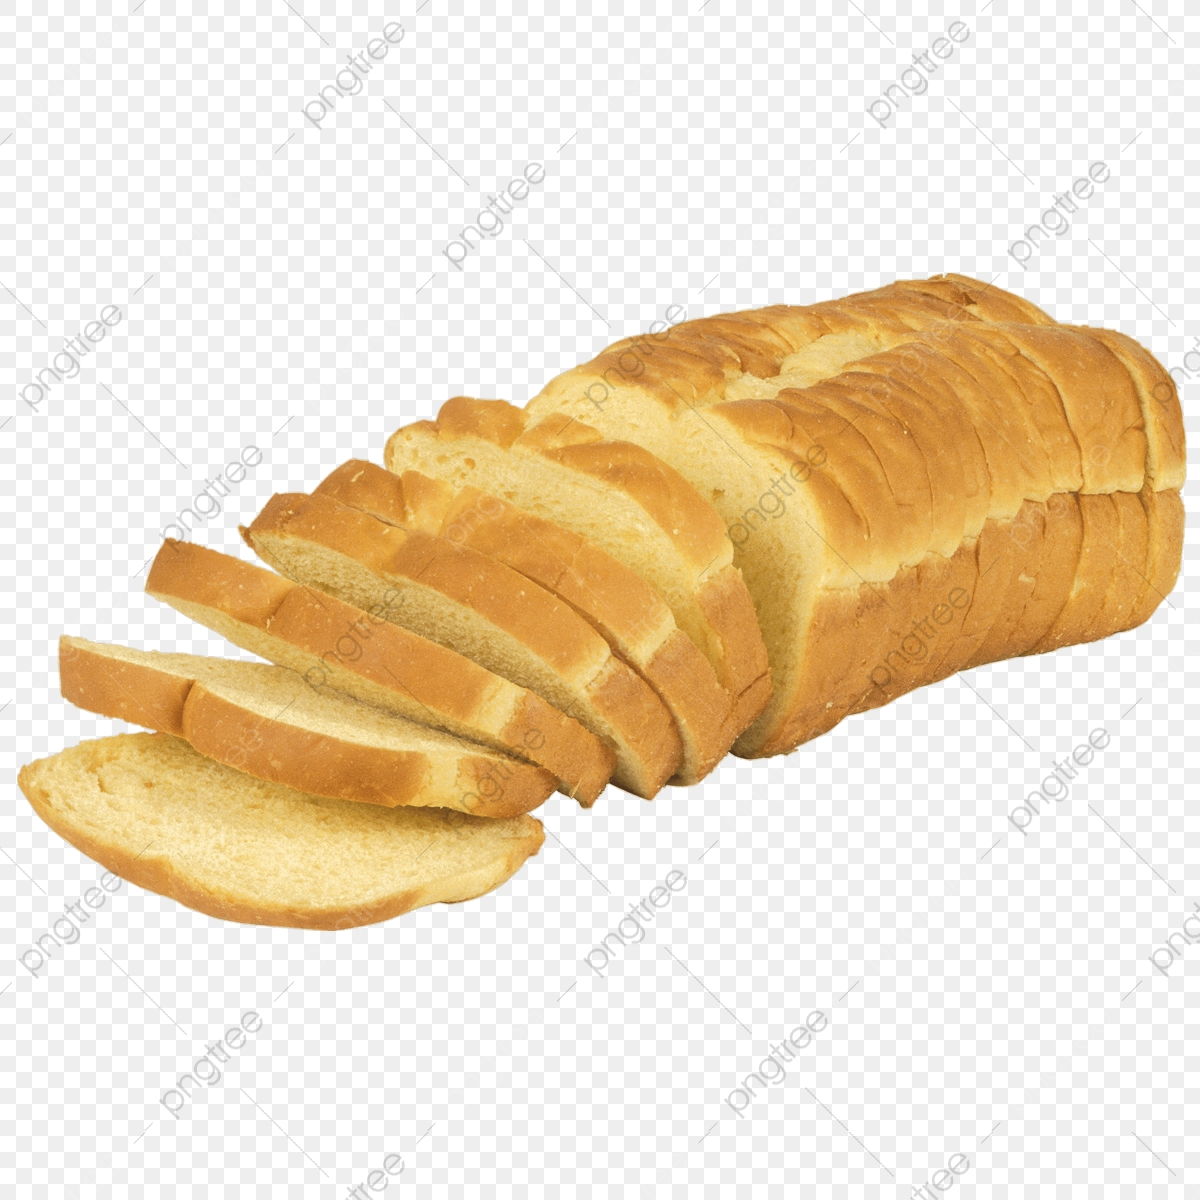 Bread Slice, Bread, Food PNG Transparent Clipart Image and PSD File.